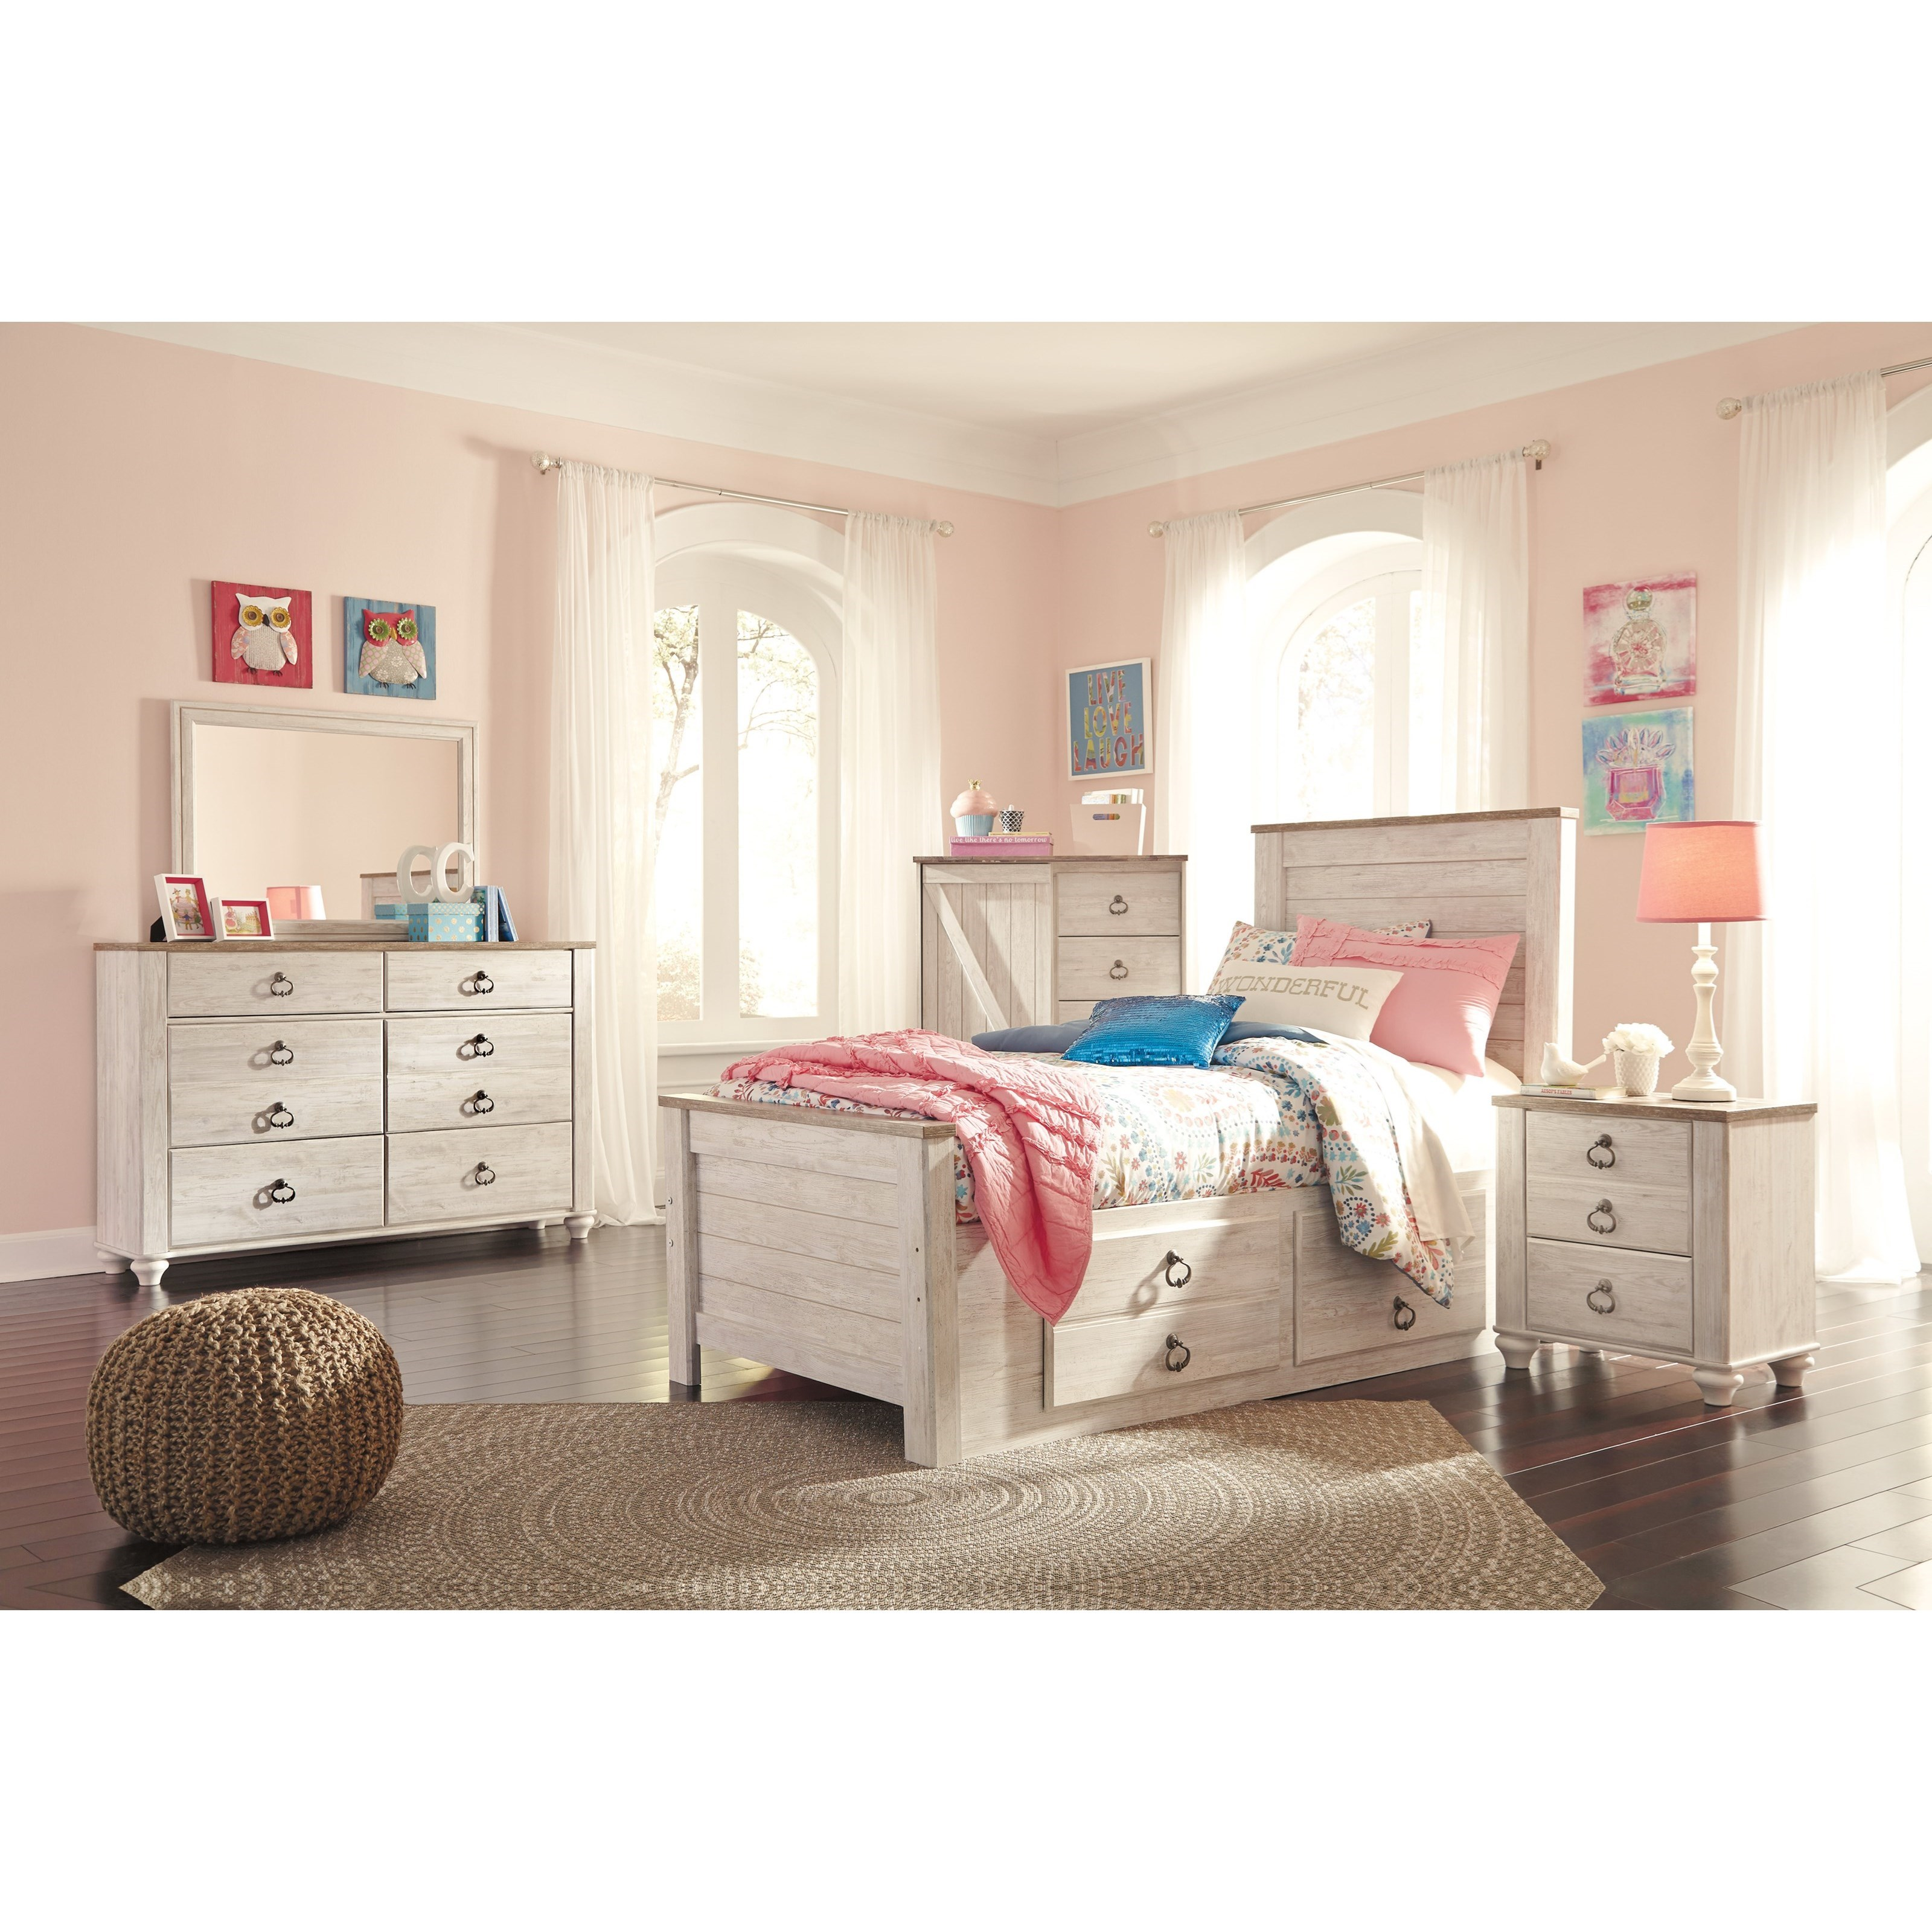 Signature design by ashley willowton twin bed with - Bedroom sets with drawers under bed ...